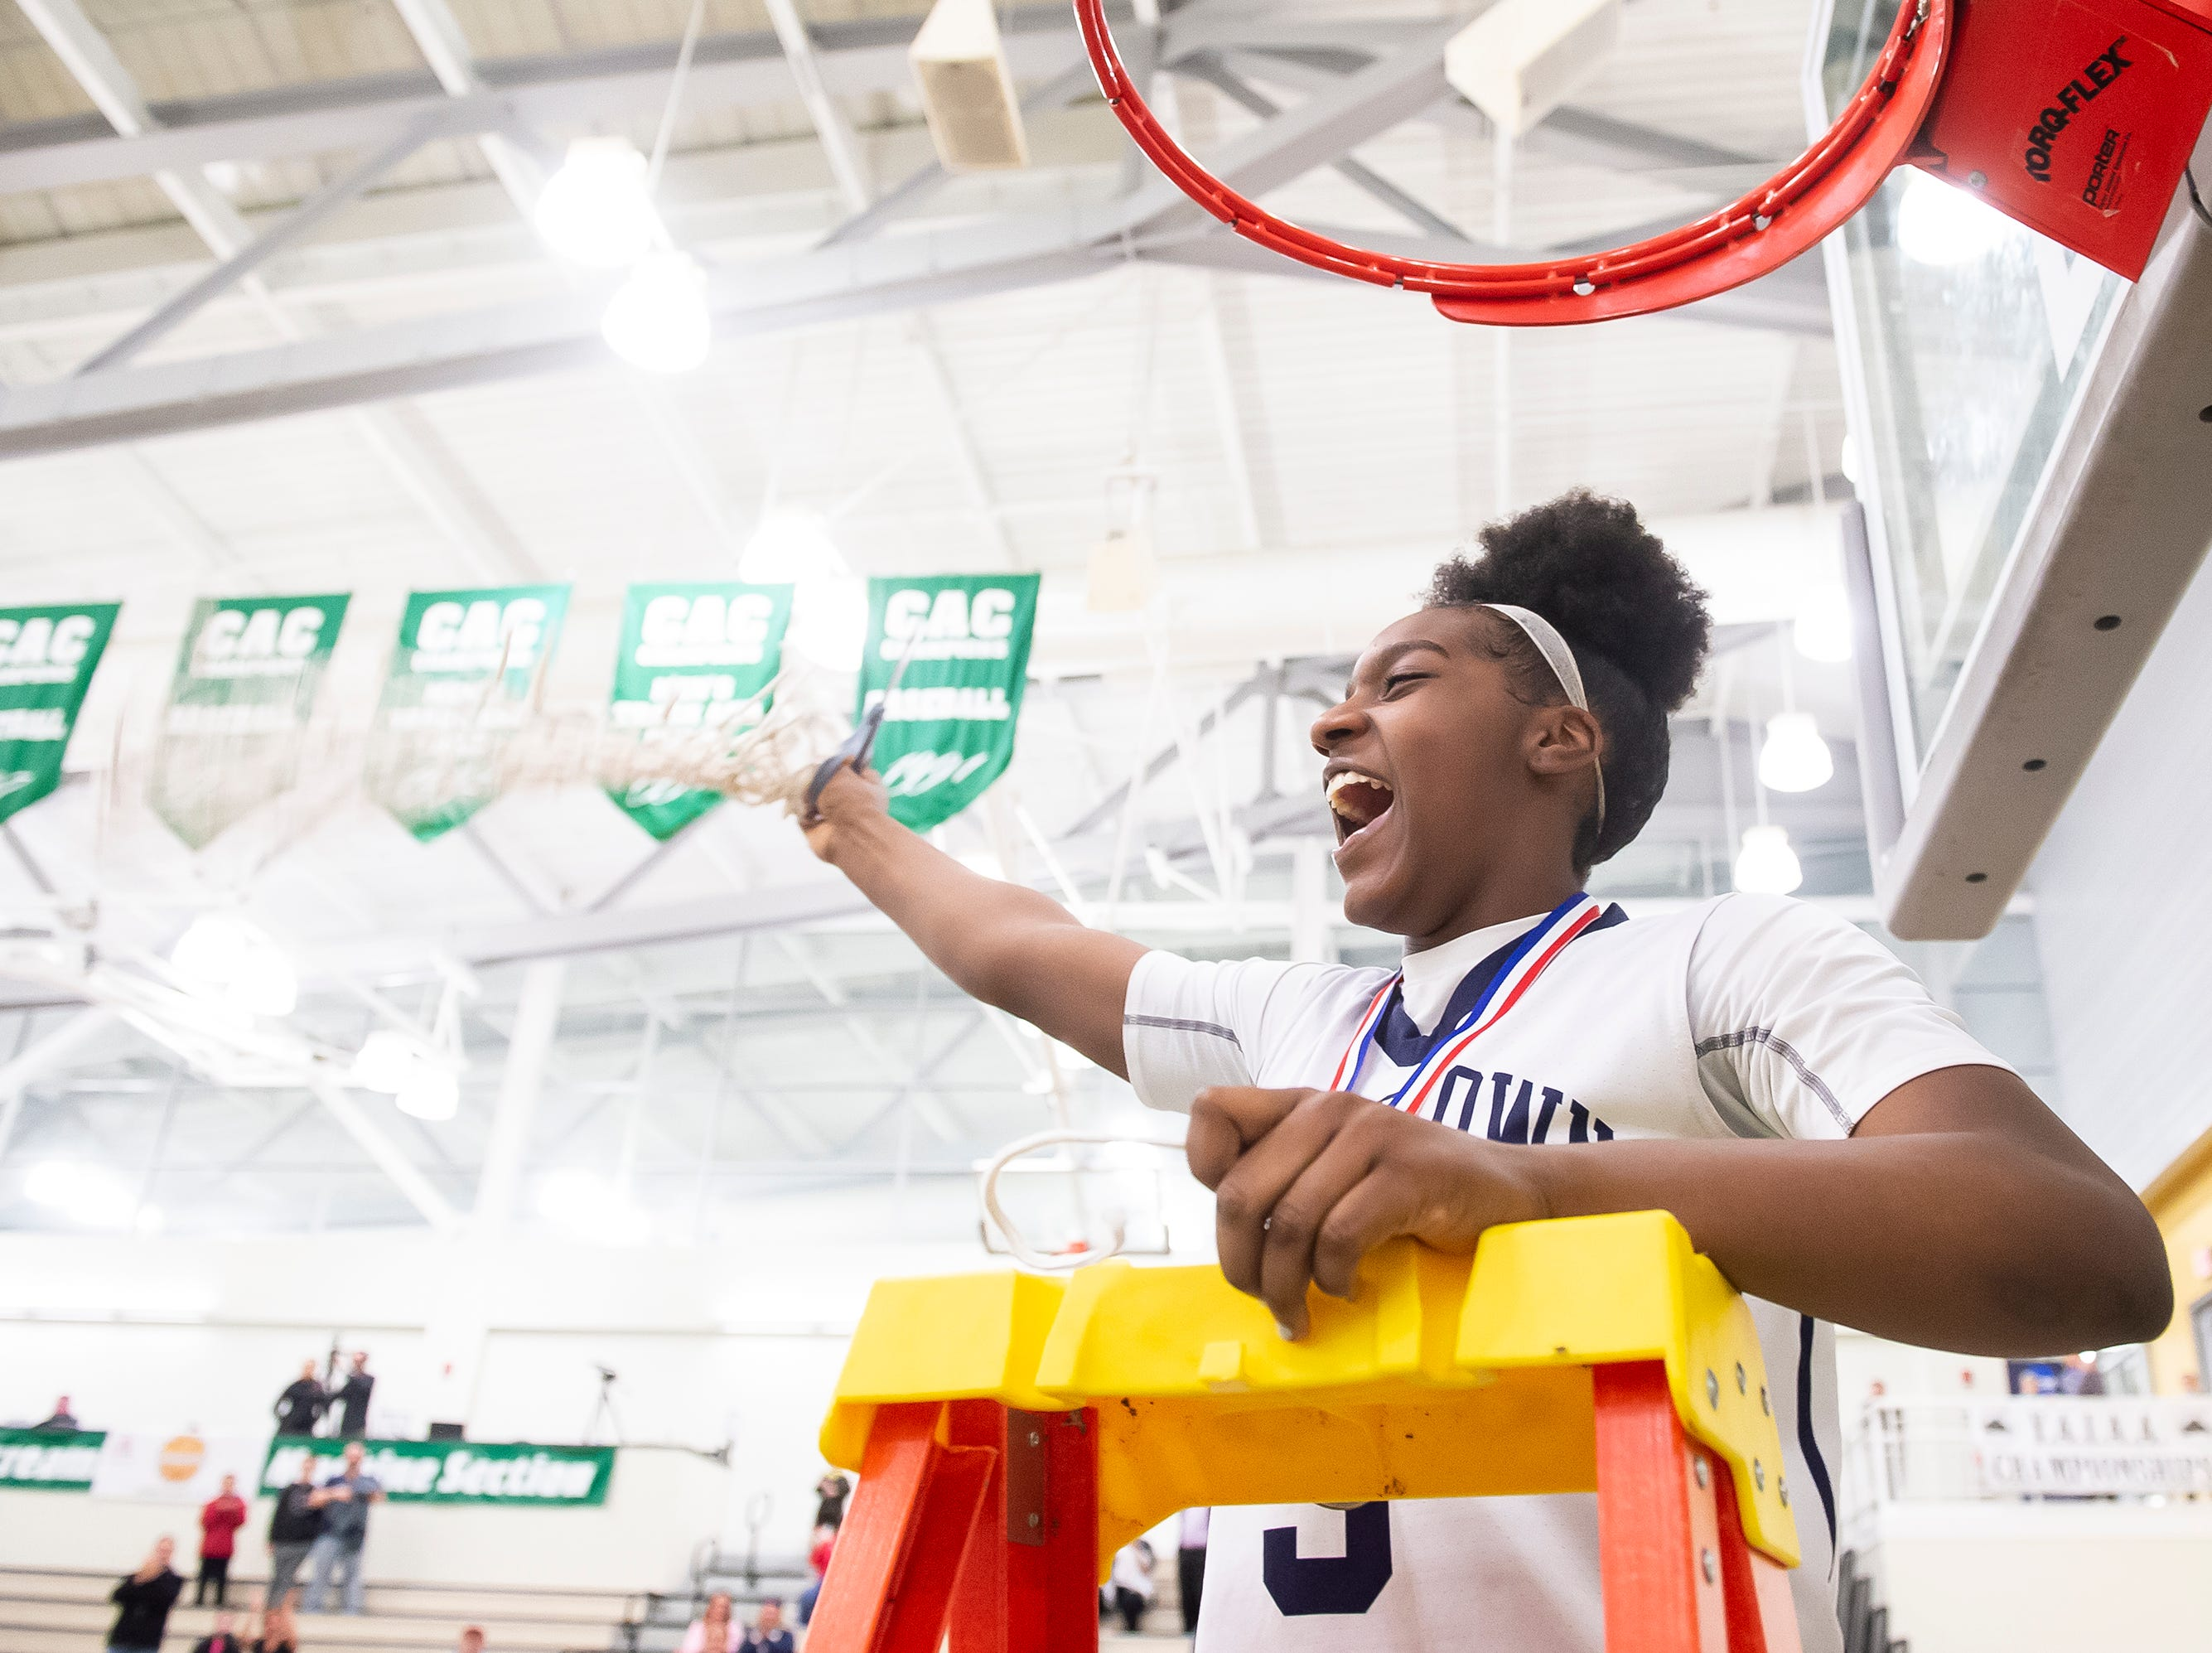 Dallastown's D'Shantae Edwards waves the net after cutting the down as the Wildcats defeated Spring Grove in the  YAIAA girls' championship game at Charles Wolf Gym at York College Thursday, February 14, 2019. The Wildcats won 36-26.